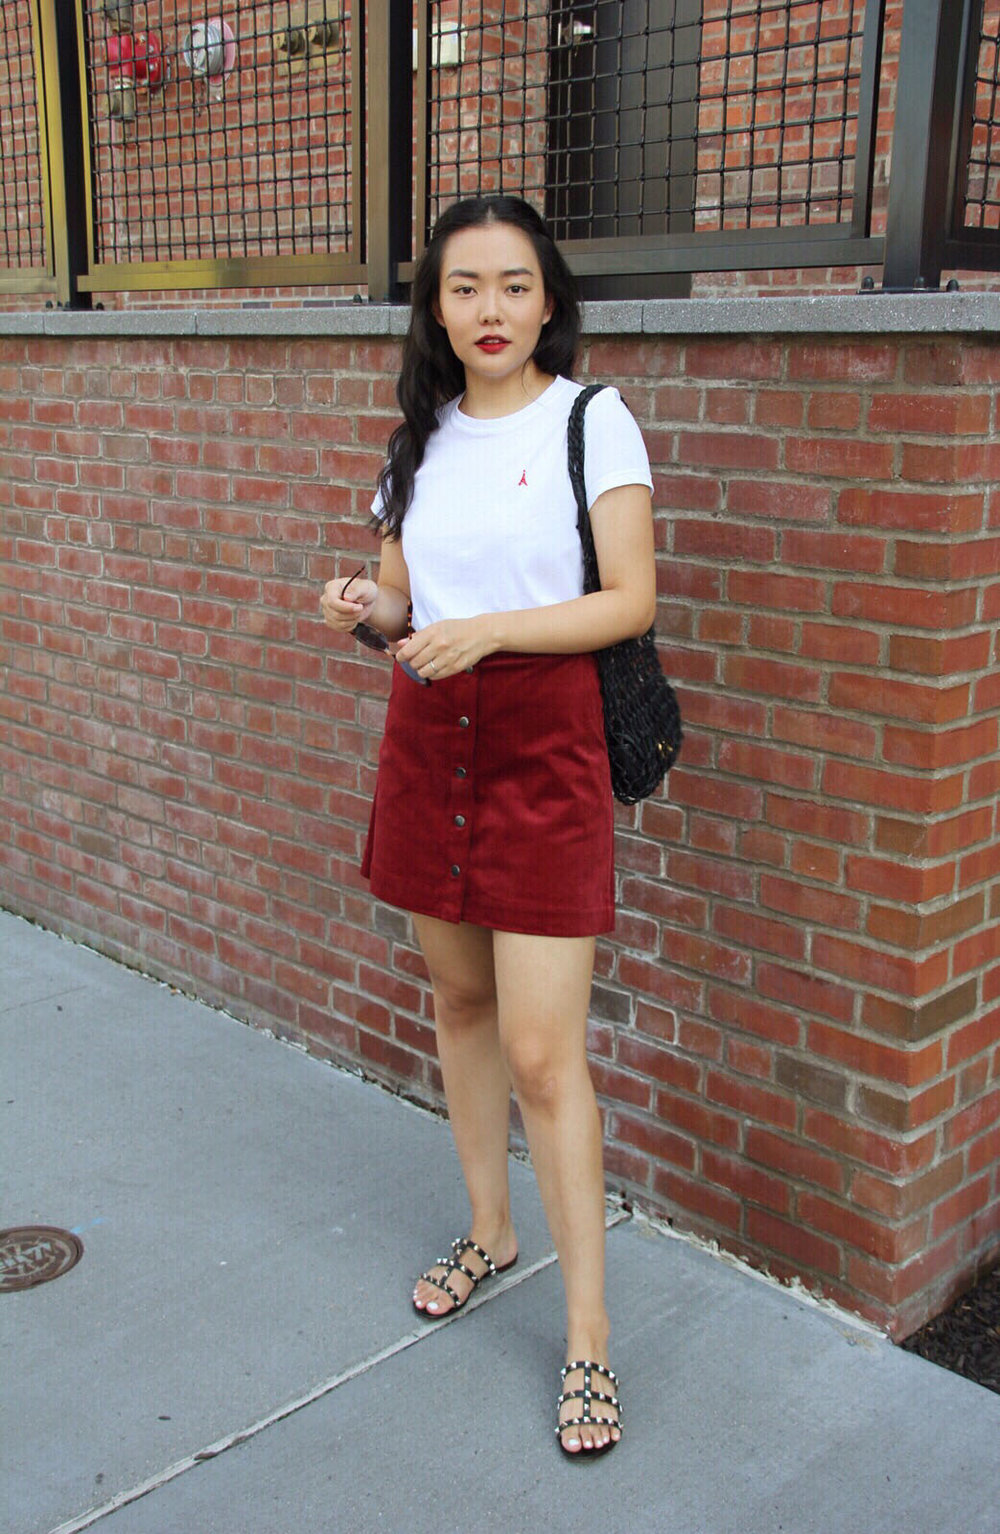 Outfit Ideas For School - Cute & Easy To Wear